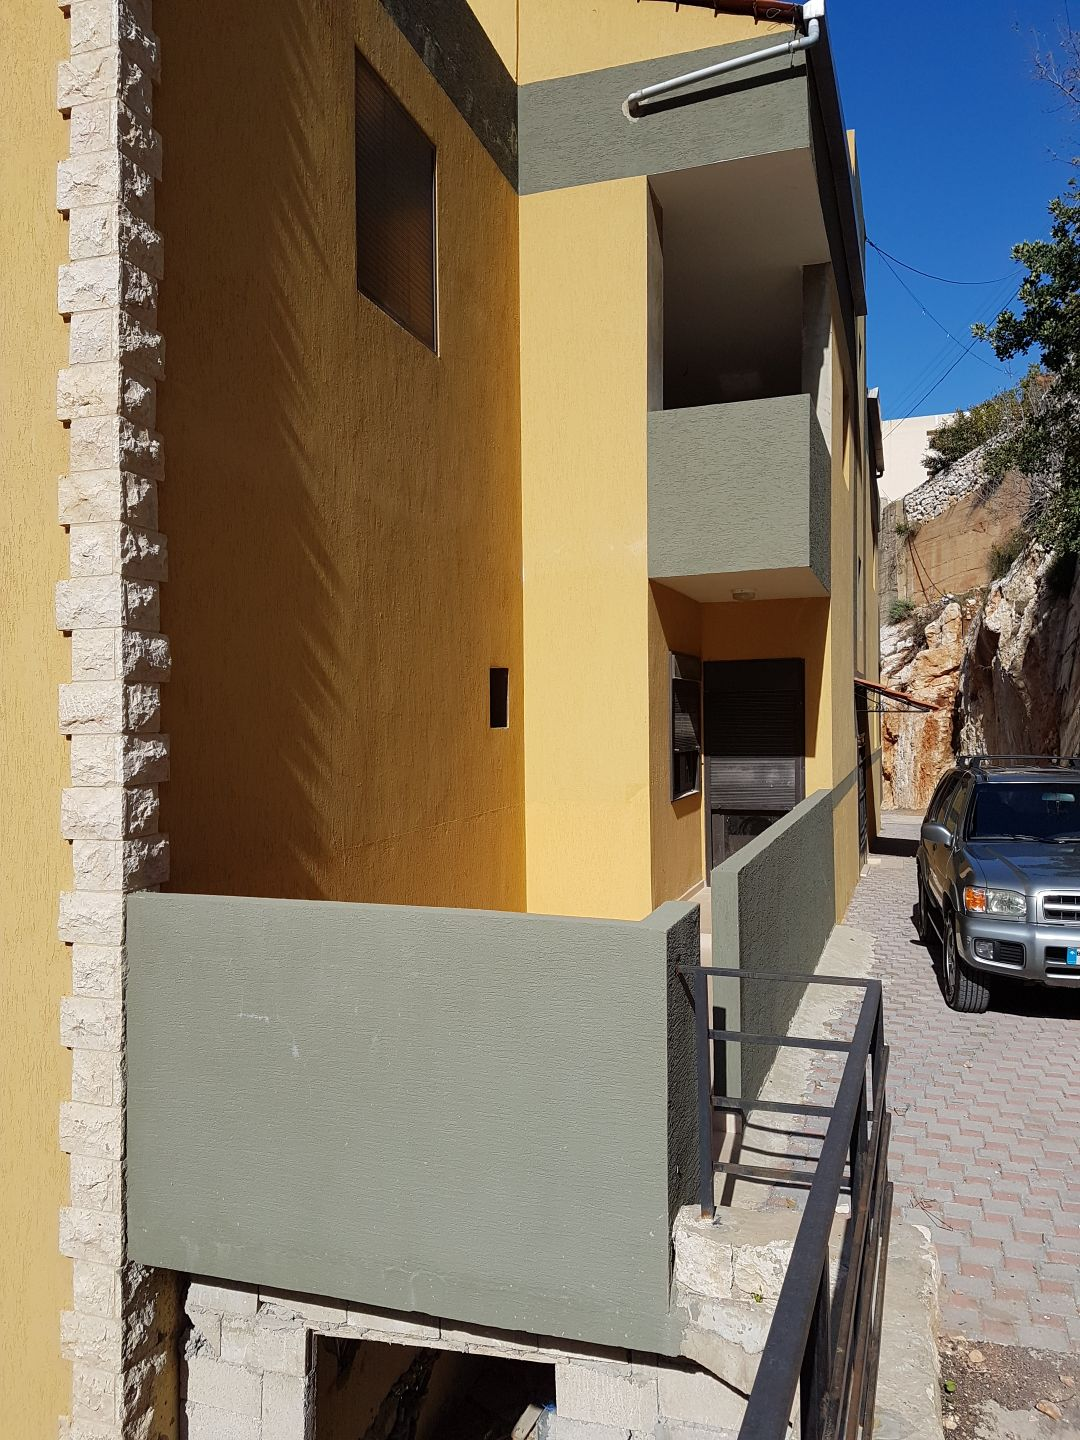 Apartment for sale in Ghedrass - Ghedress, real estate in Ghedrass - Ghedress, buy sell properties in Lebanon